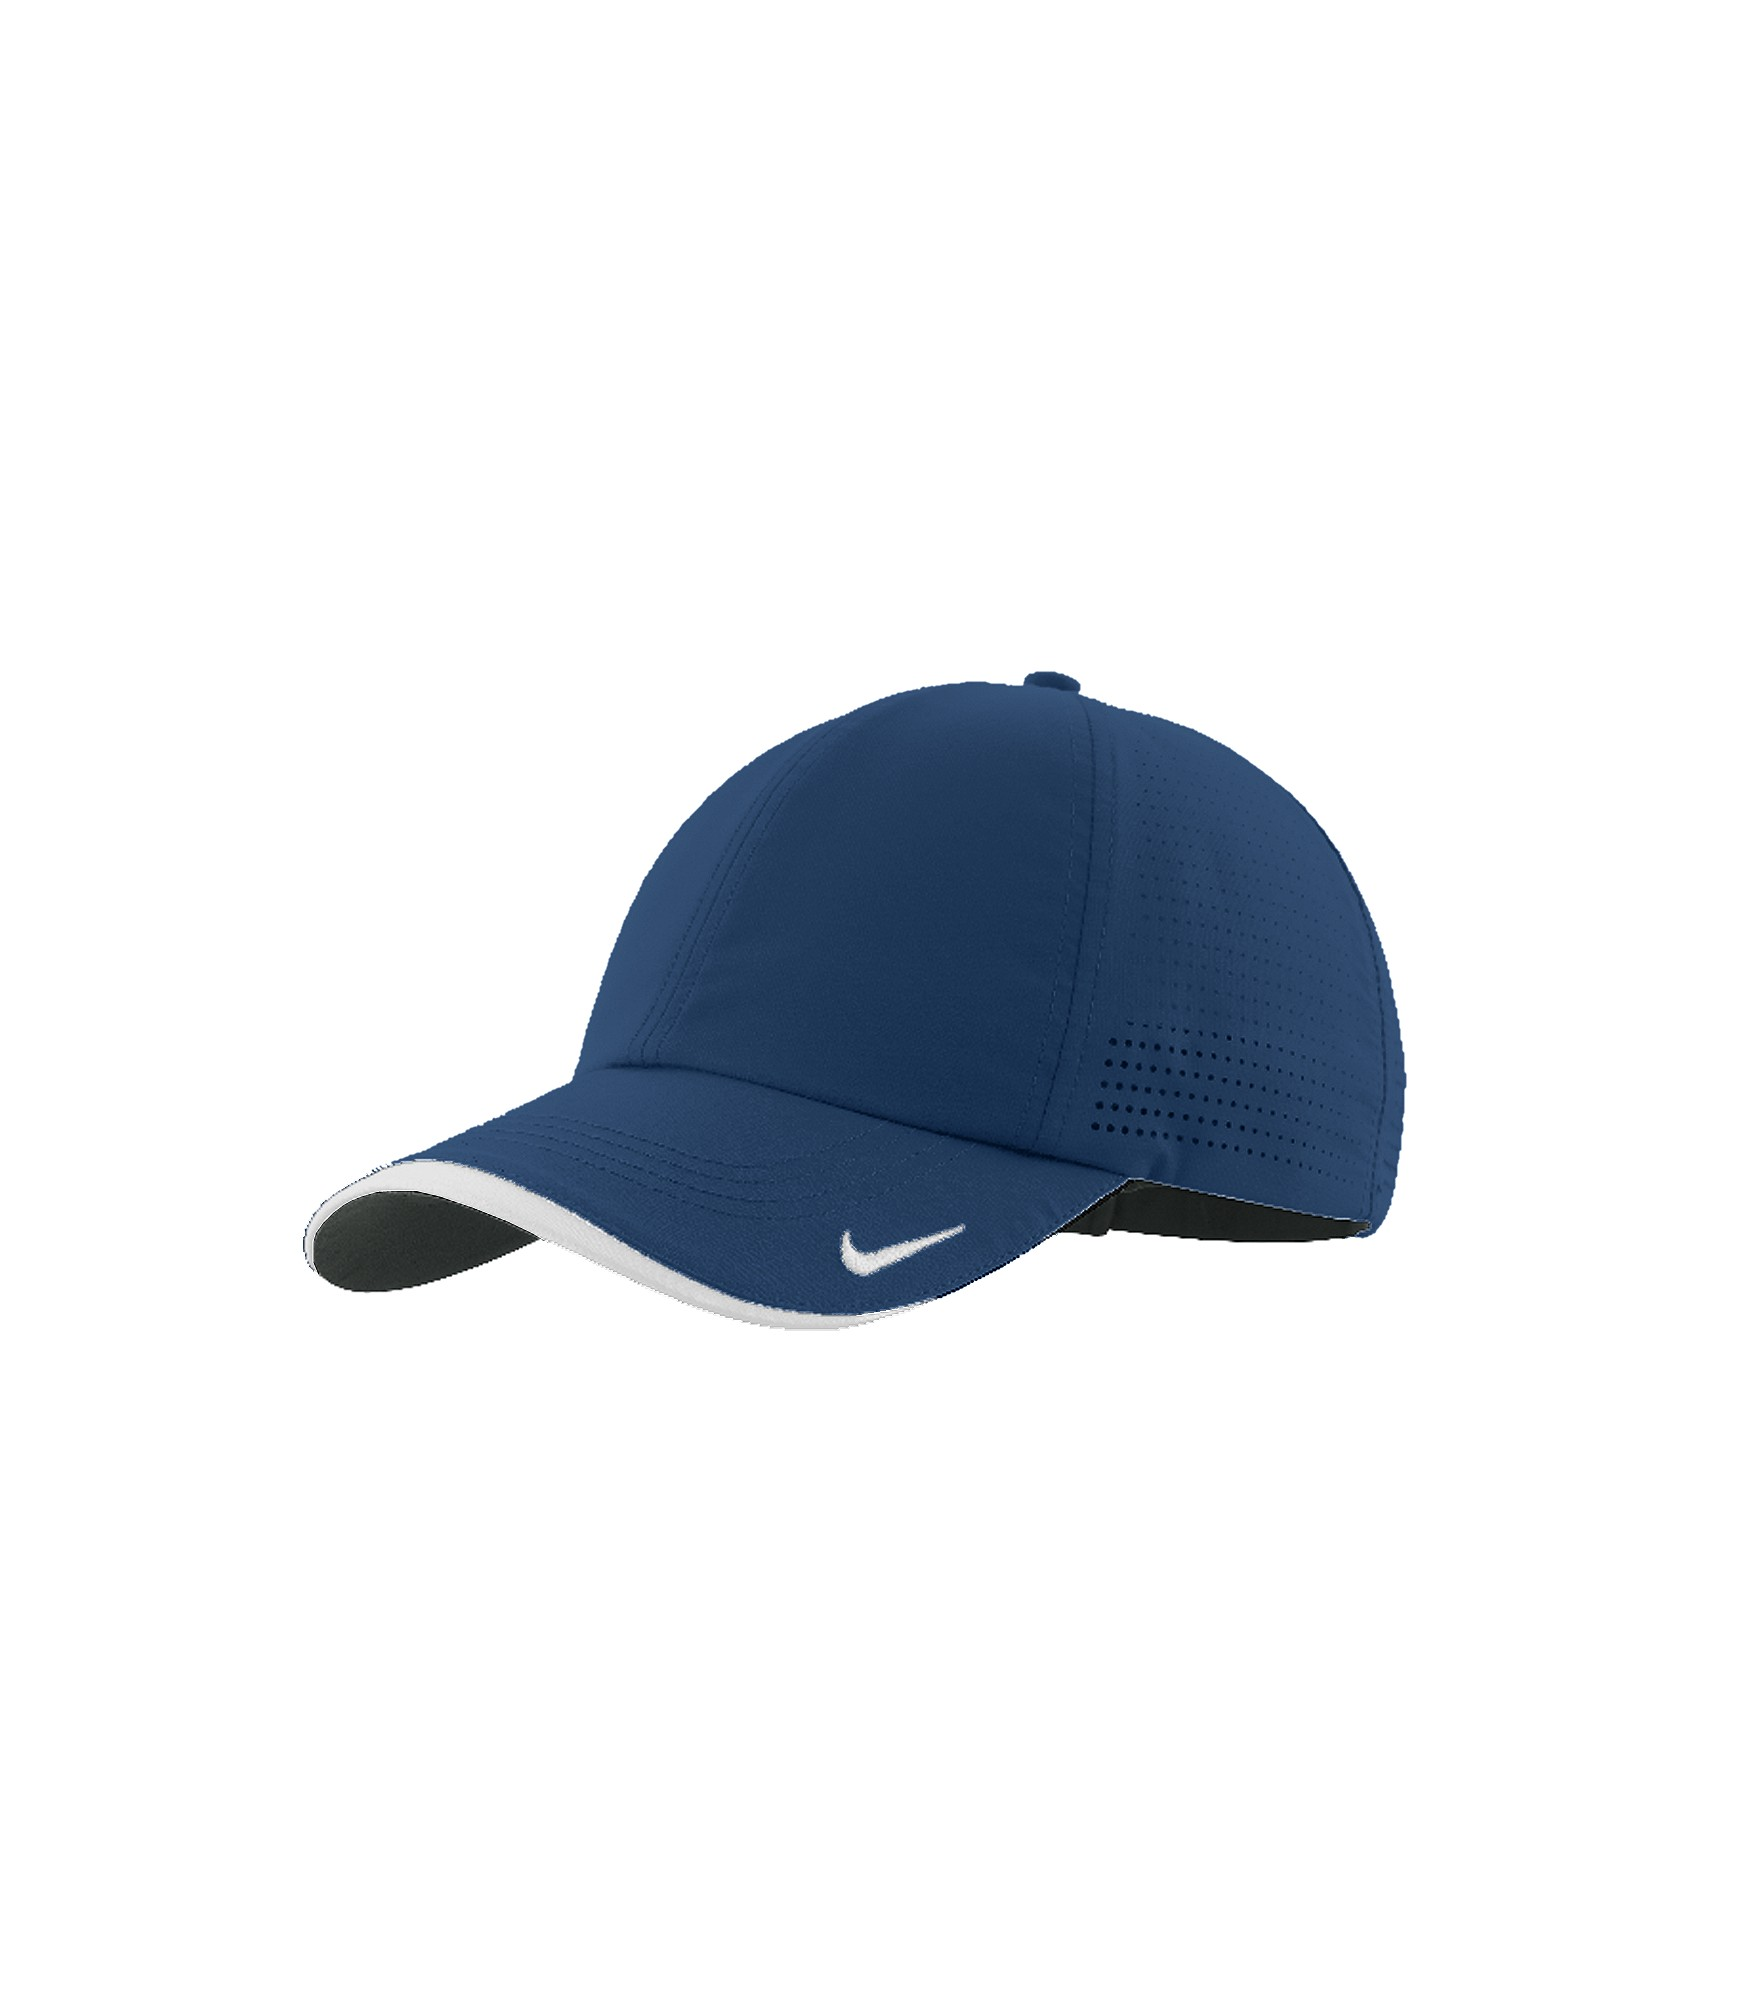 ... Nike Golf Dri-FIT Swoosh Perforated Cap. Zoom. Loading zoom 5472250b987